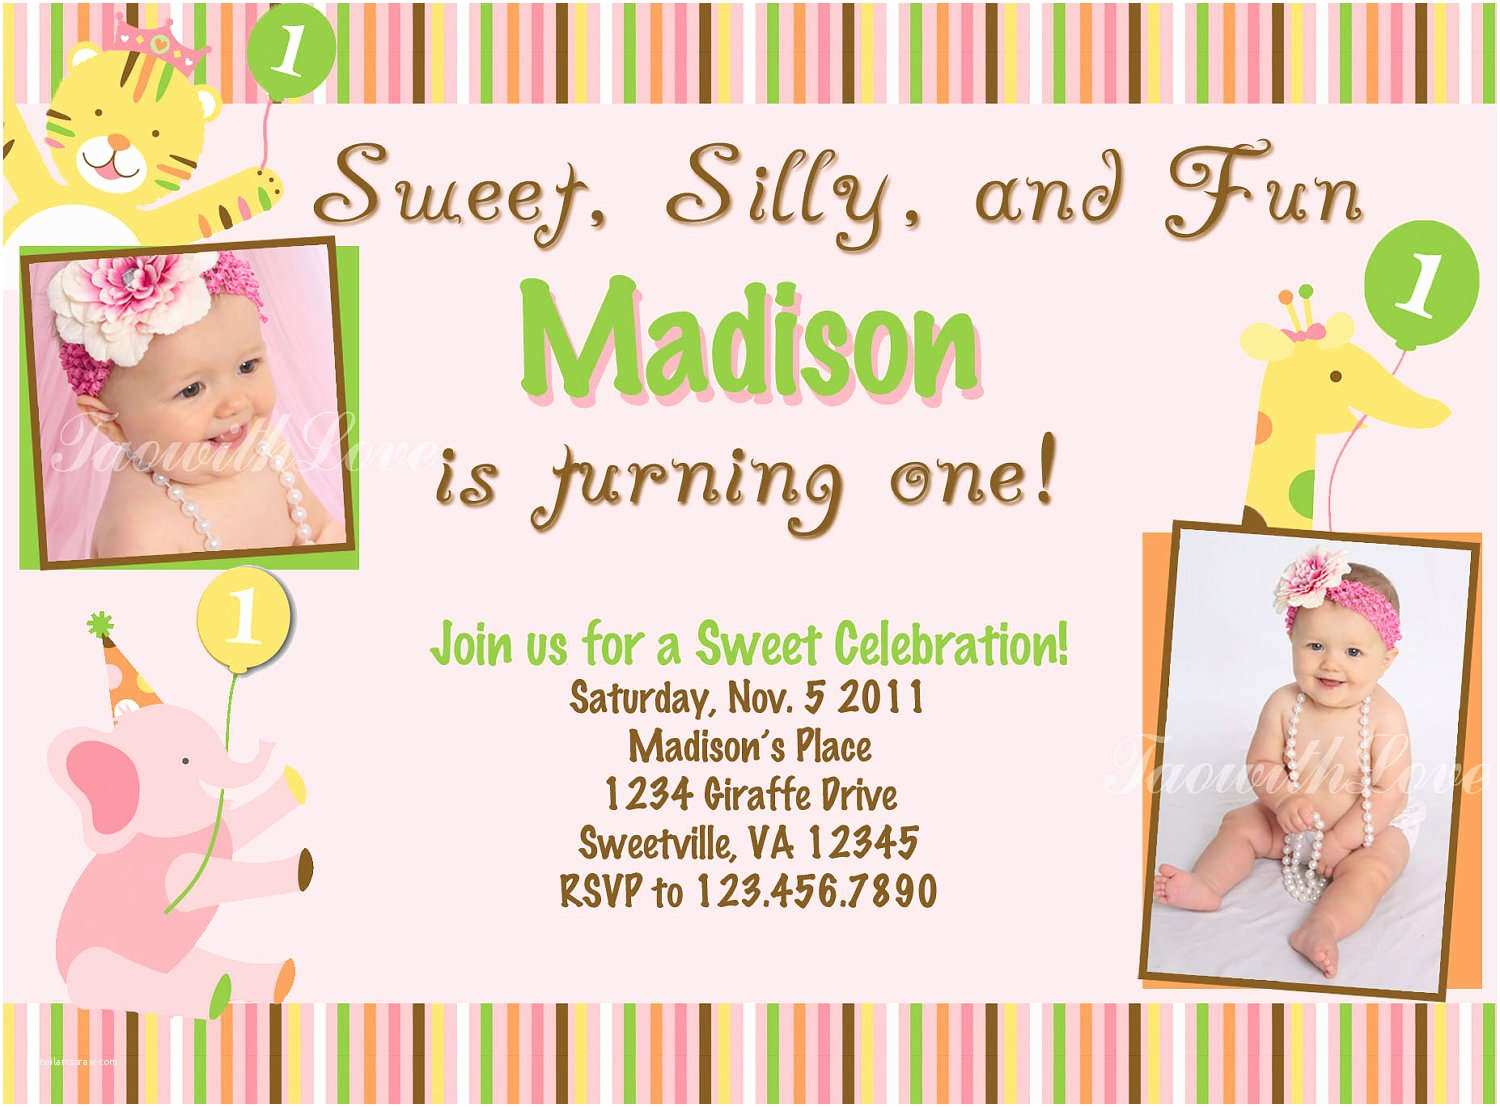 Free Birthday Party Invitation Templates How to Choose the Best E Free Printable Birthday